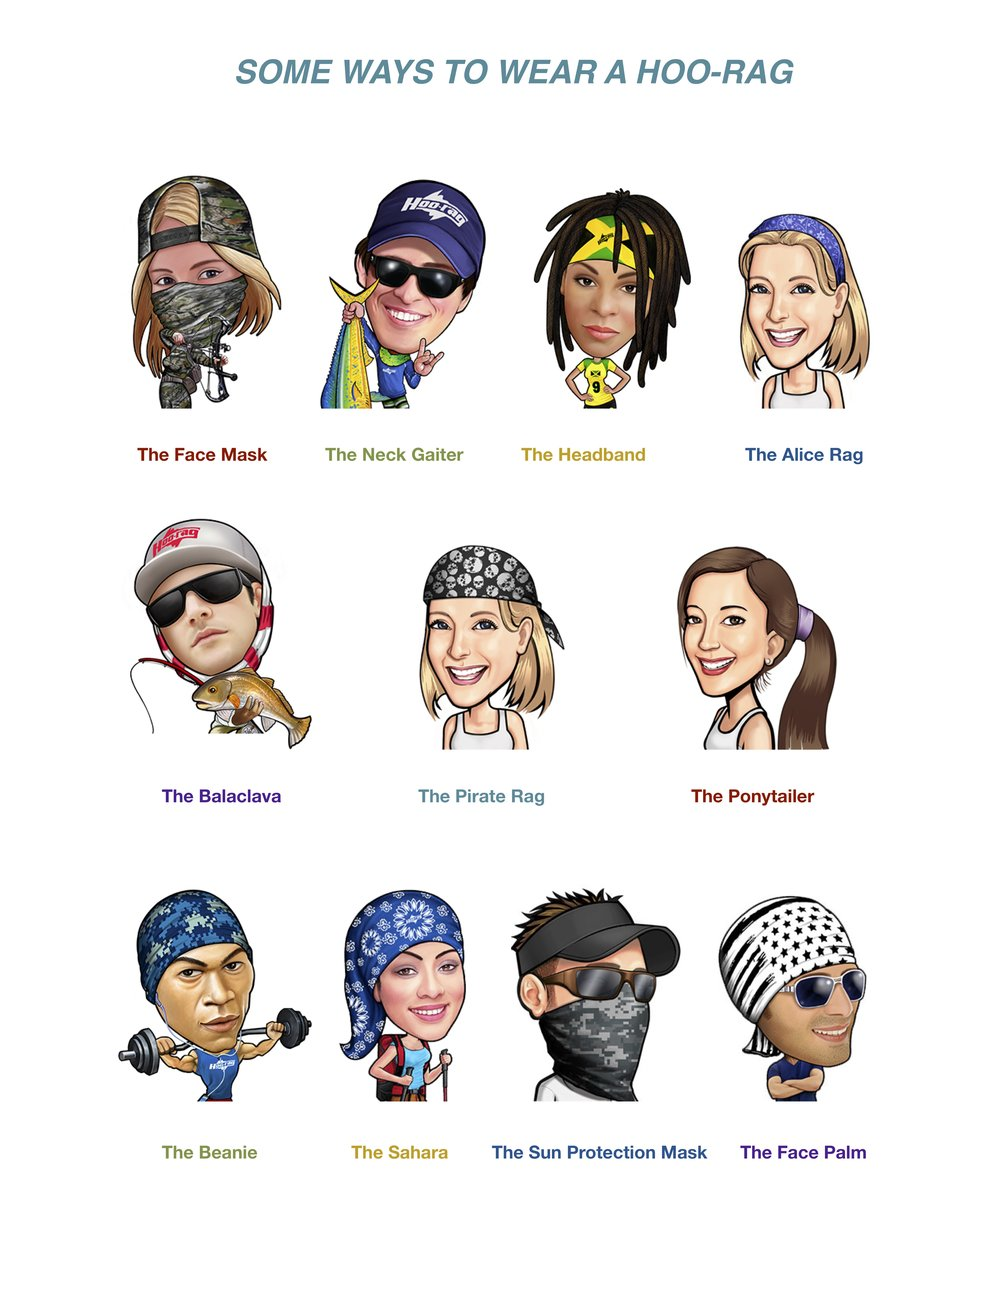 Ways to Wear Hoo-rags.jpg